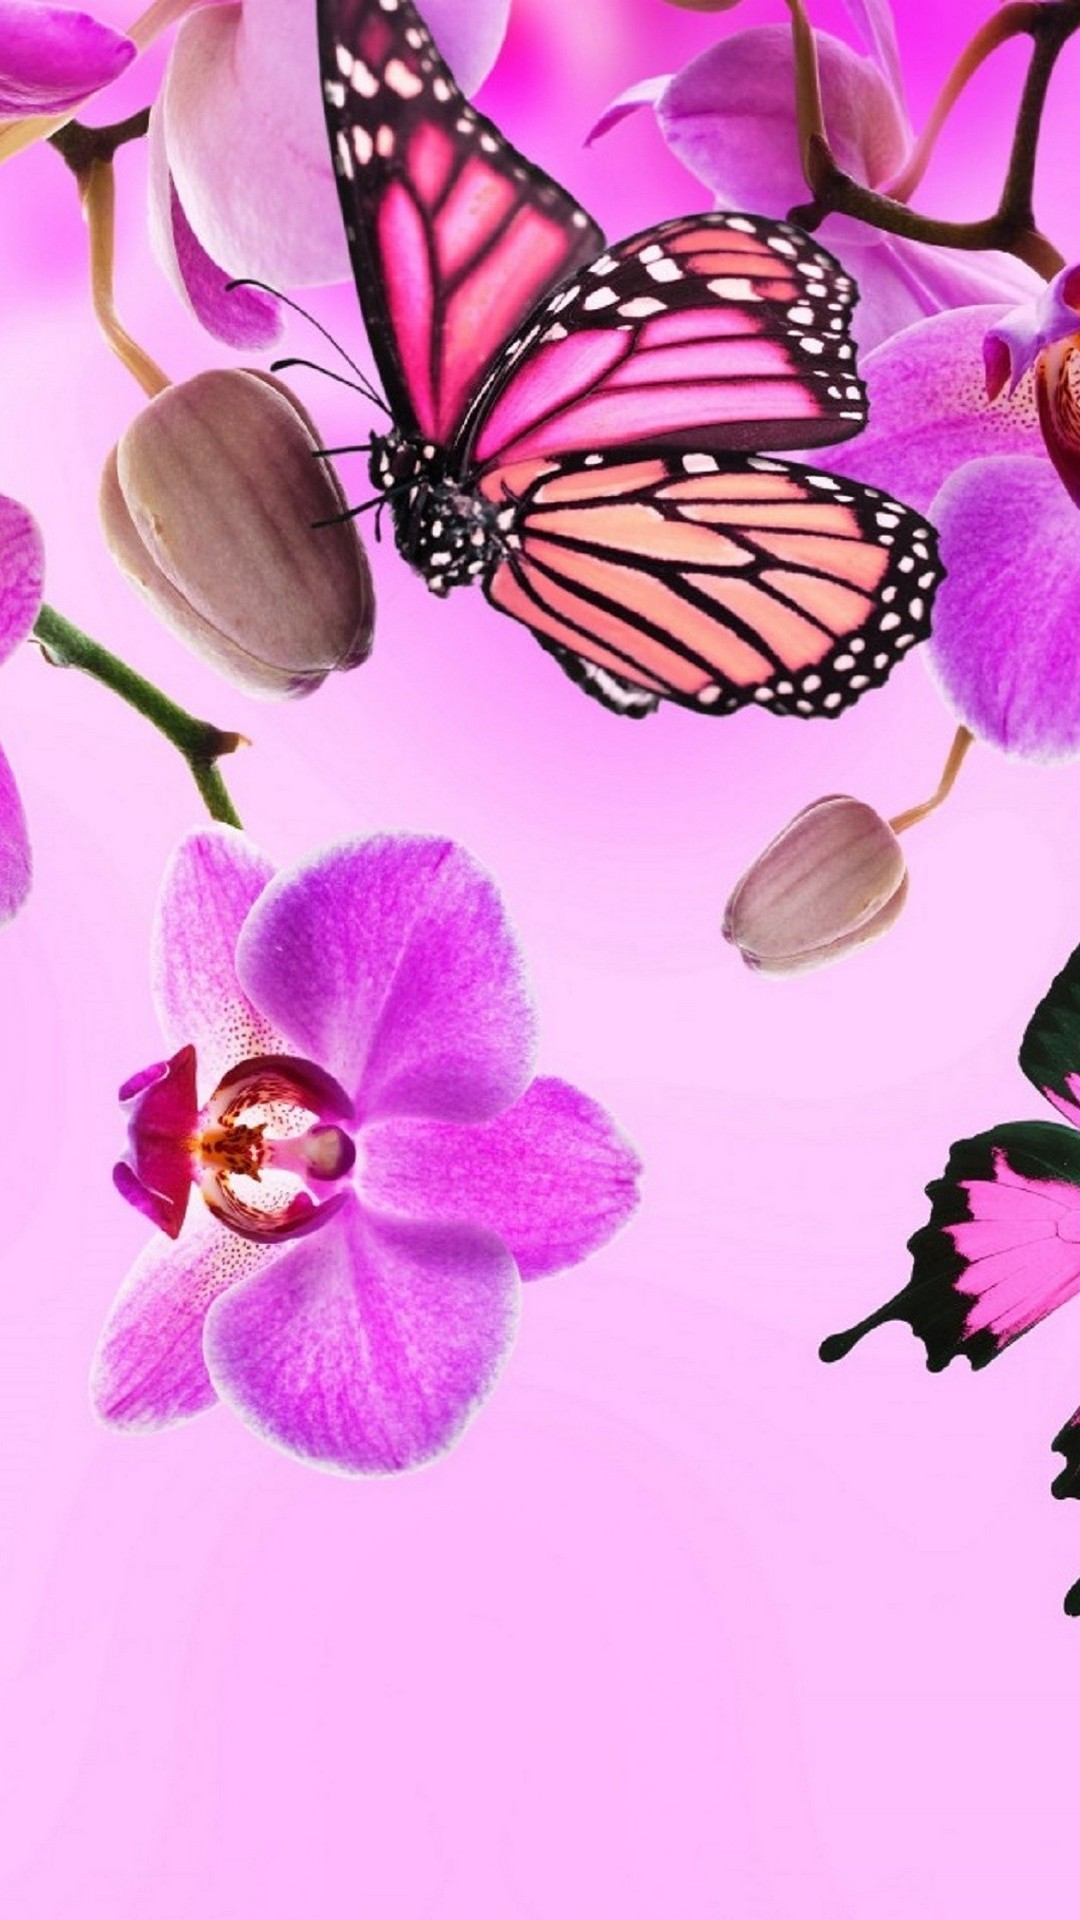 Download Pink Butterflies Wallpaper Hd Backgrounds Download